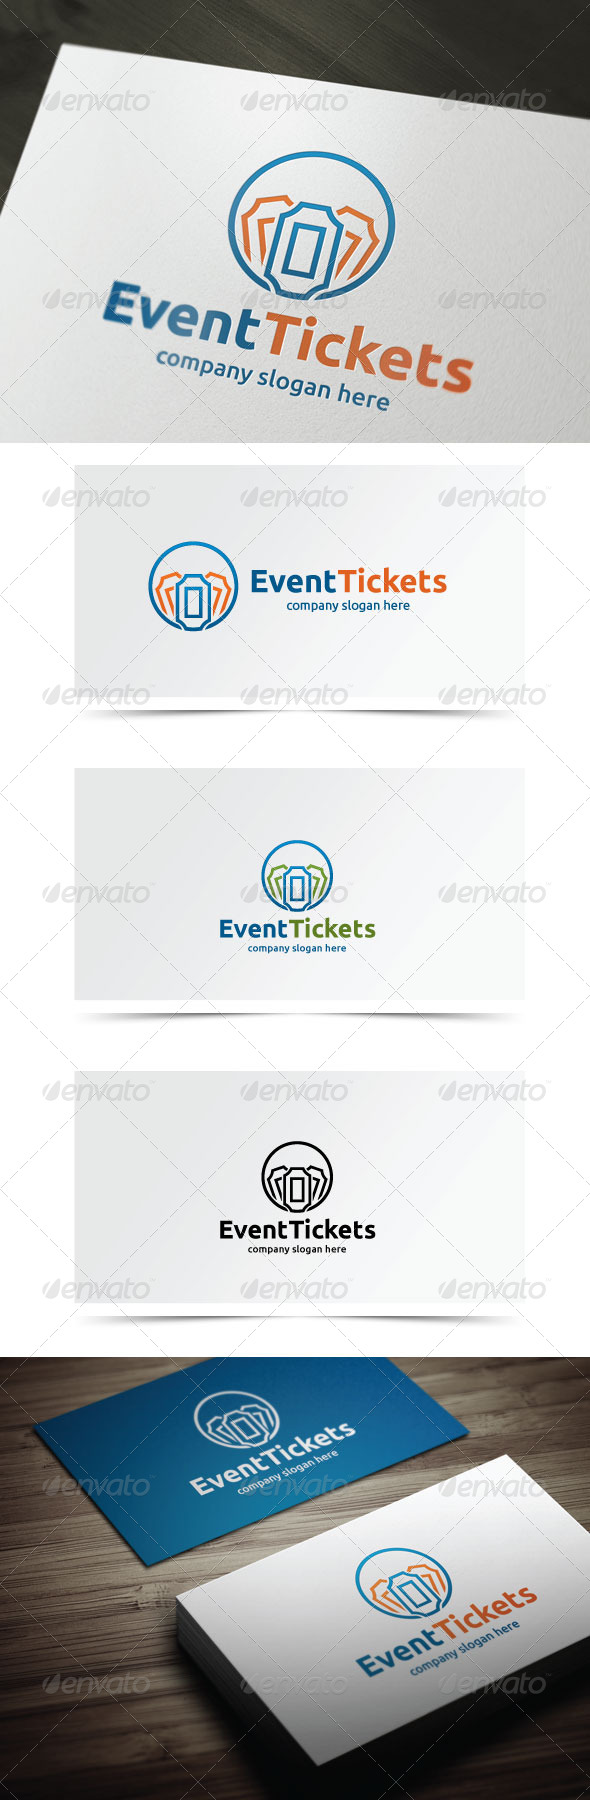 GraphicRiver Event Tickets 5926483